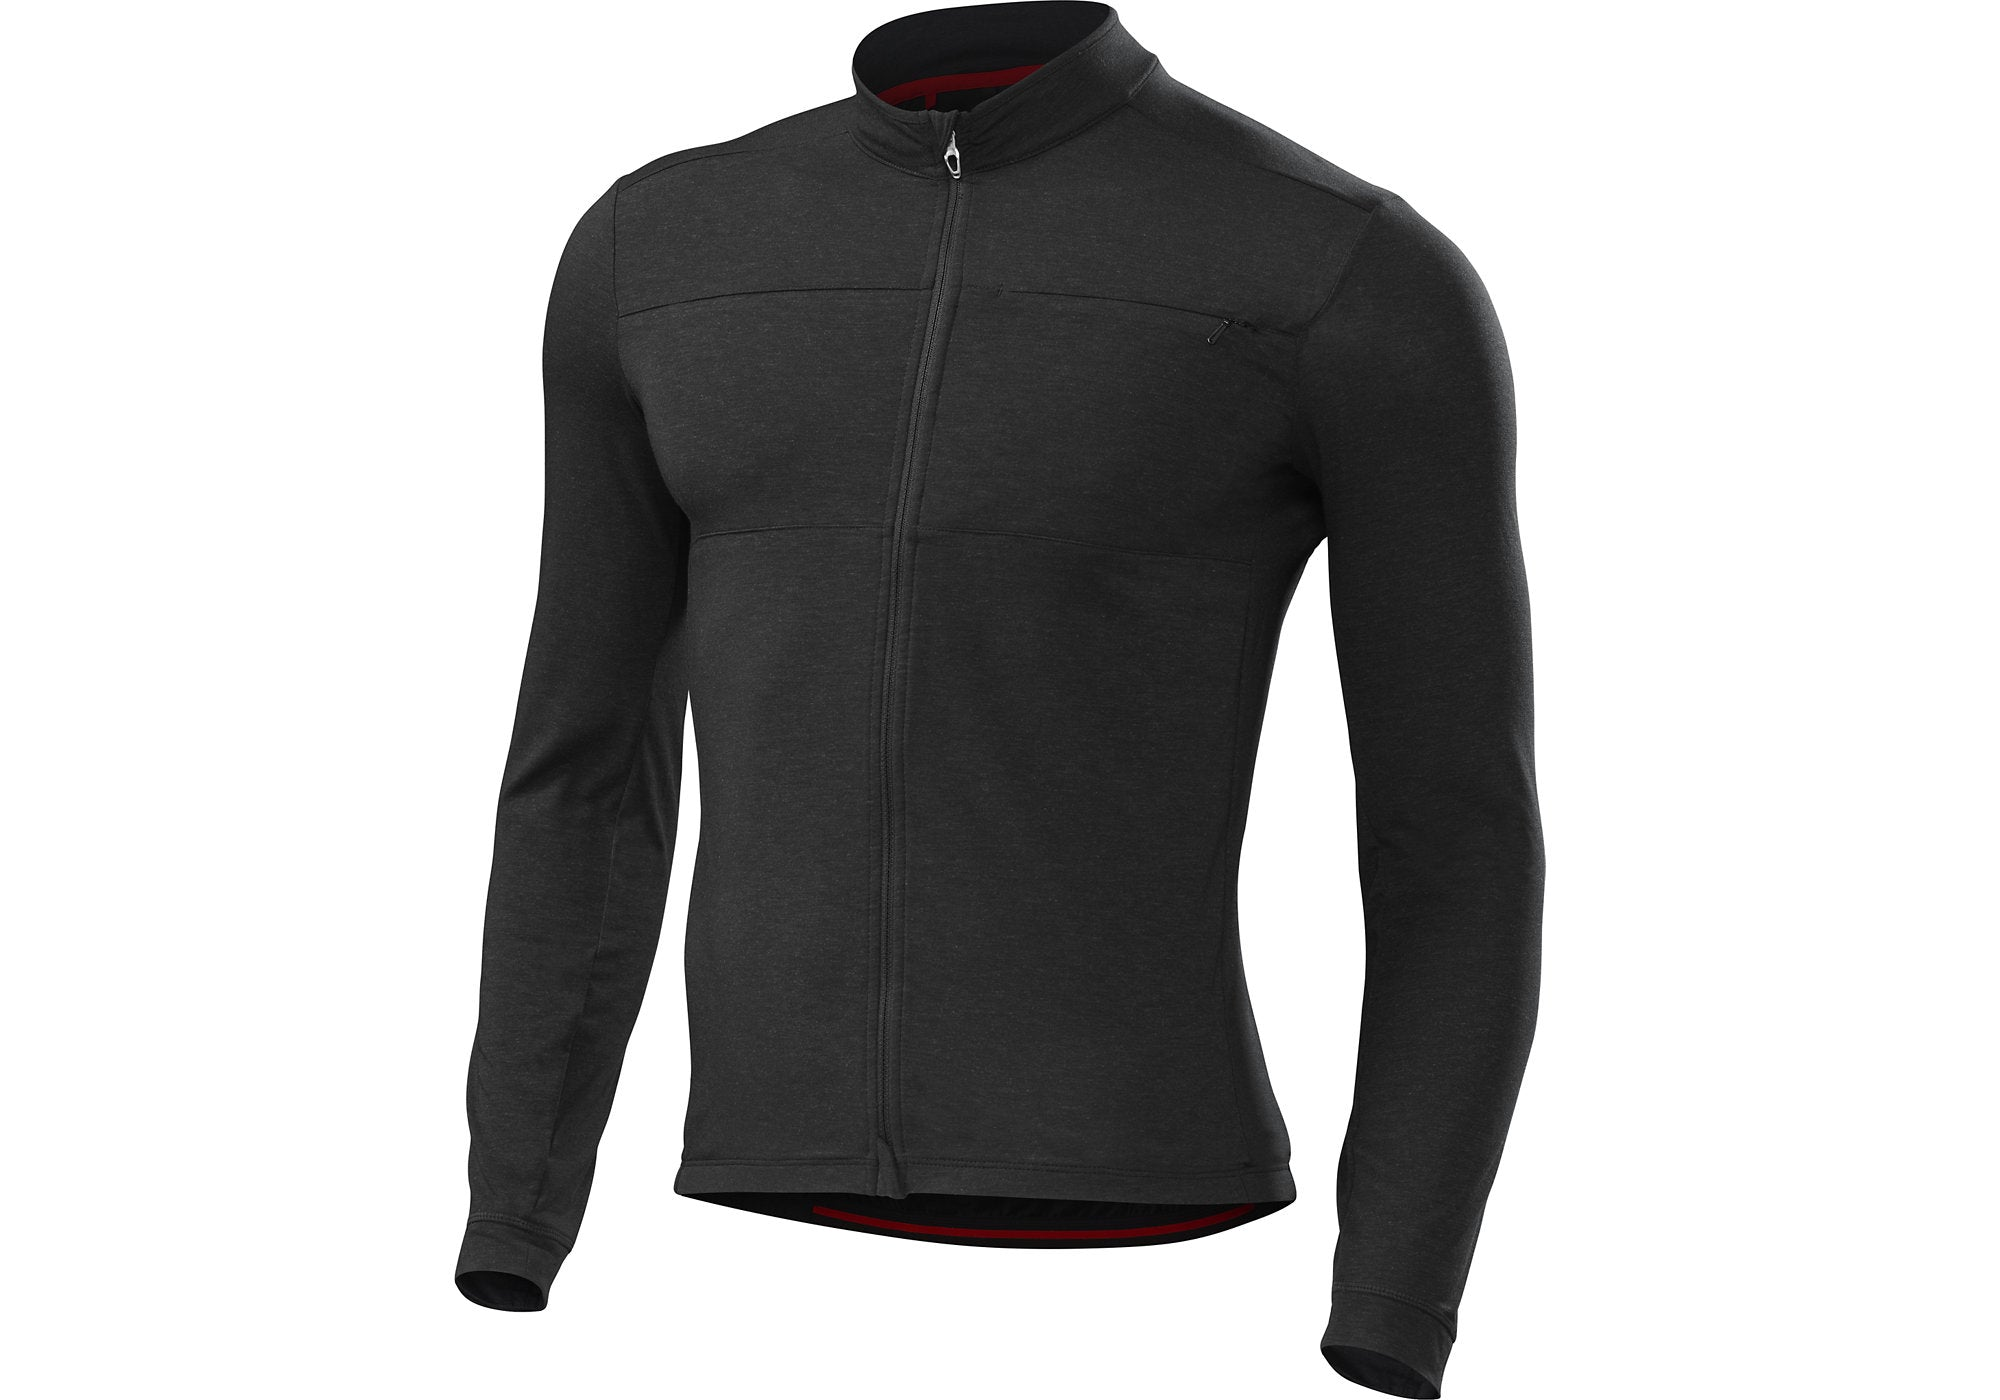 Specialized RBX Drirelease Merino Mens Jersey Long Sleeve Black